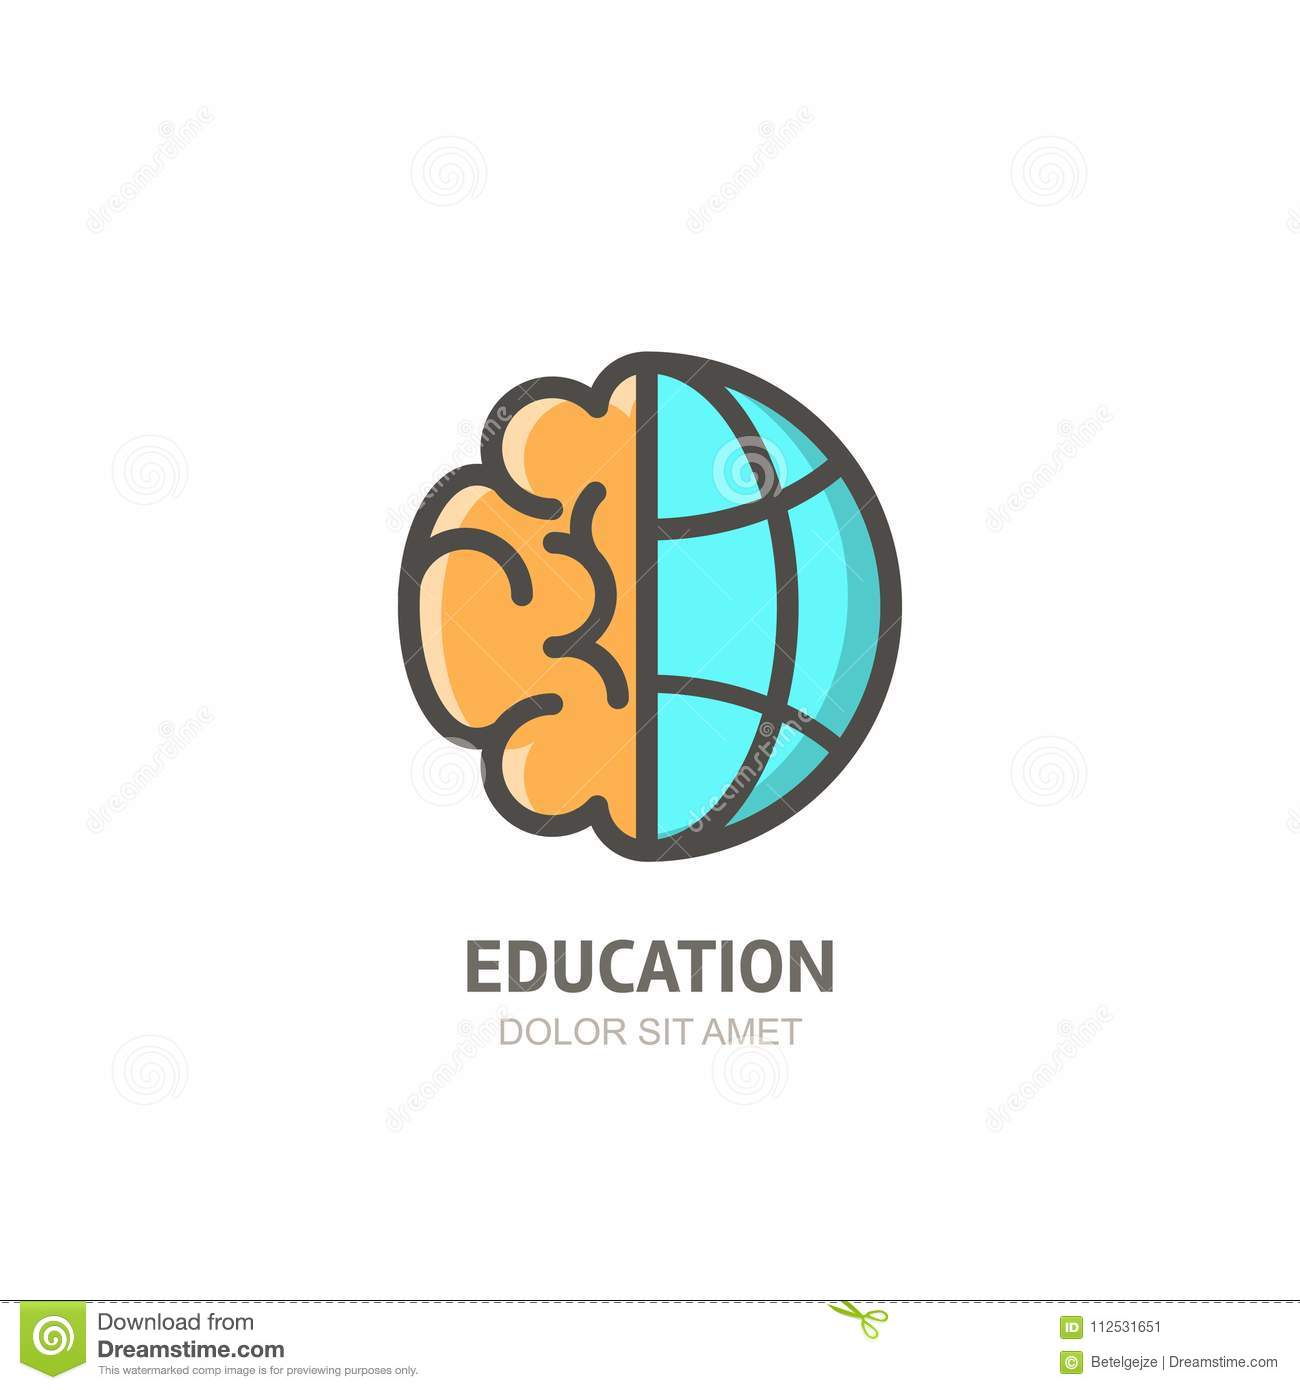 Vector logo icon with brain and globe. Flat linear illustration. Design concept for business, education, creativity.